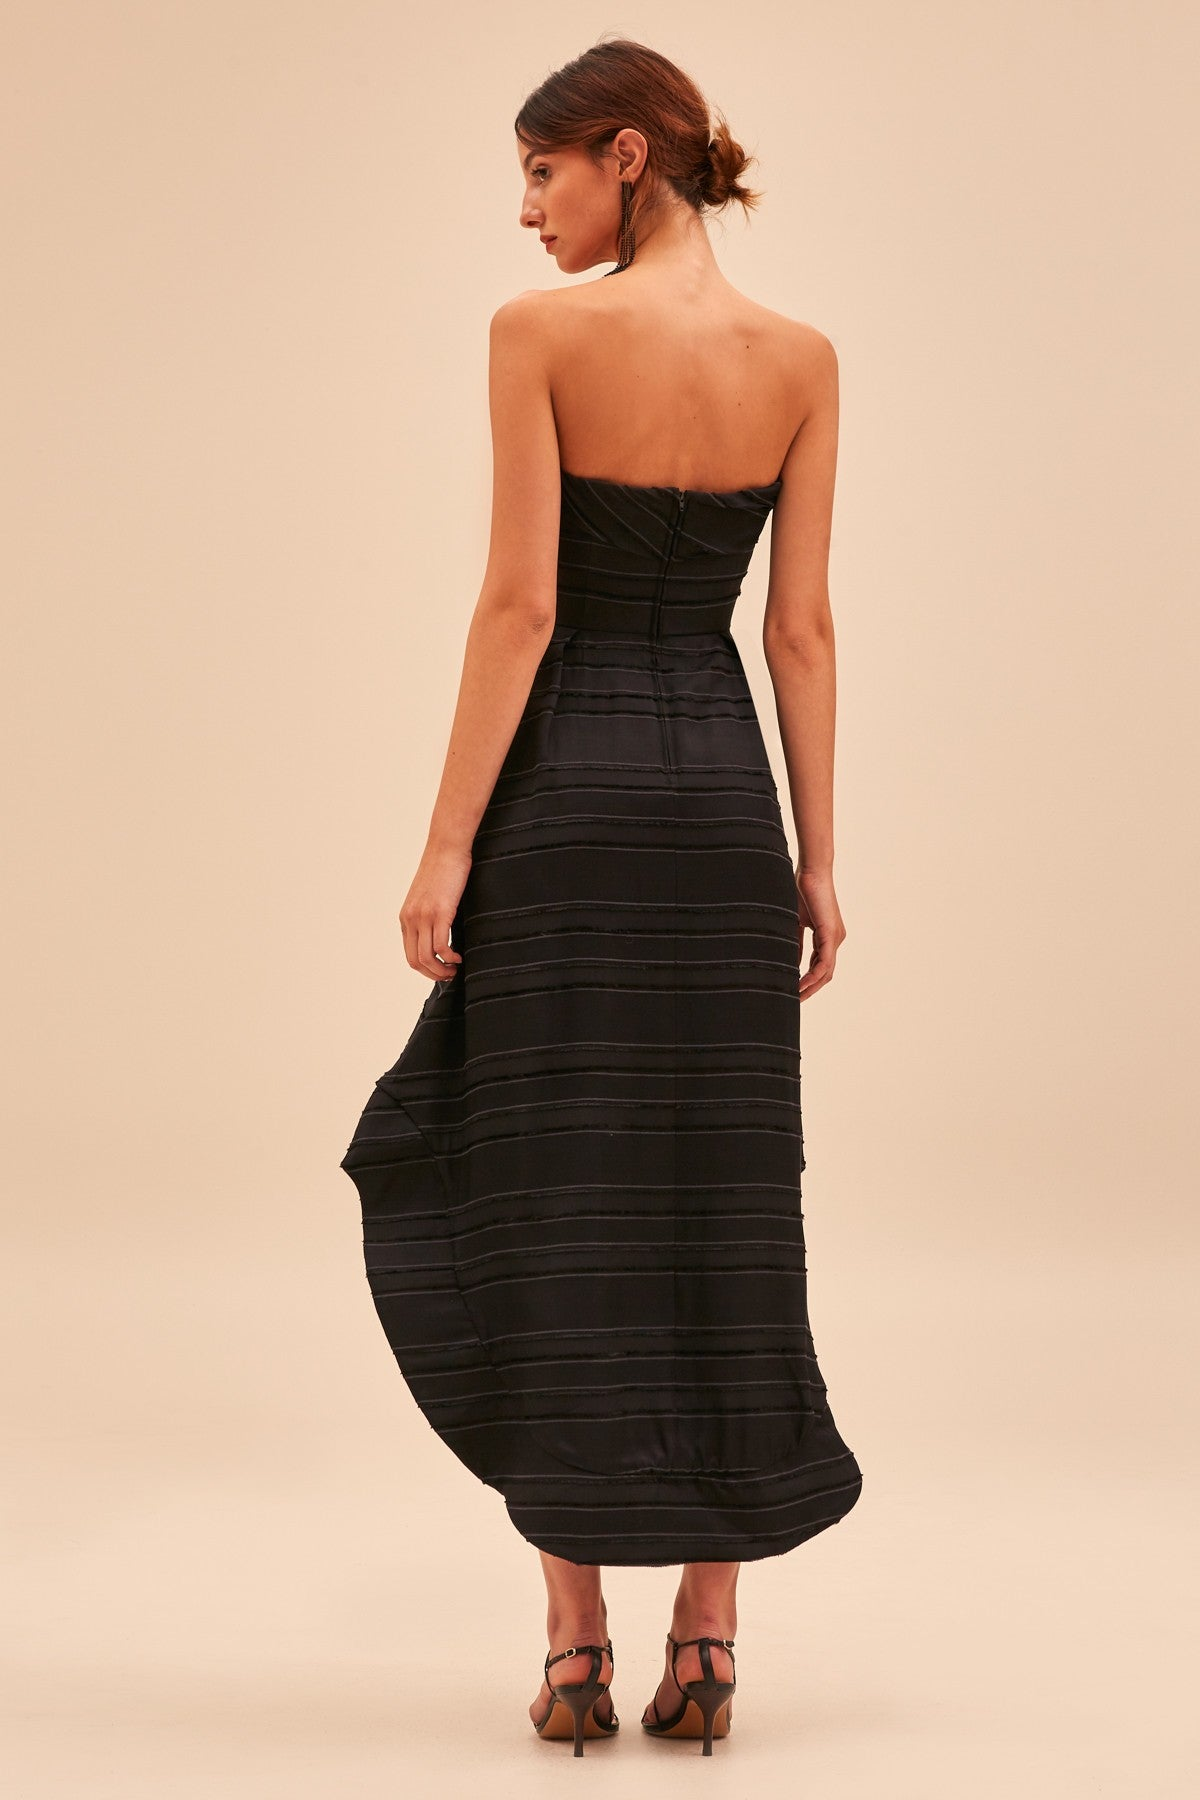 SOLITUDE GOWN black